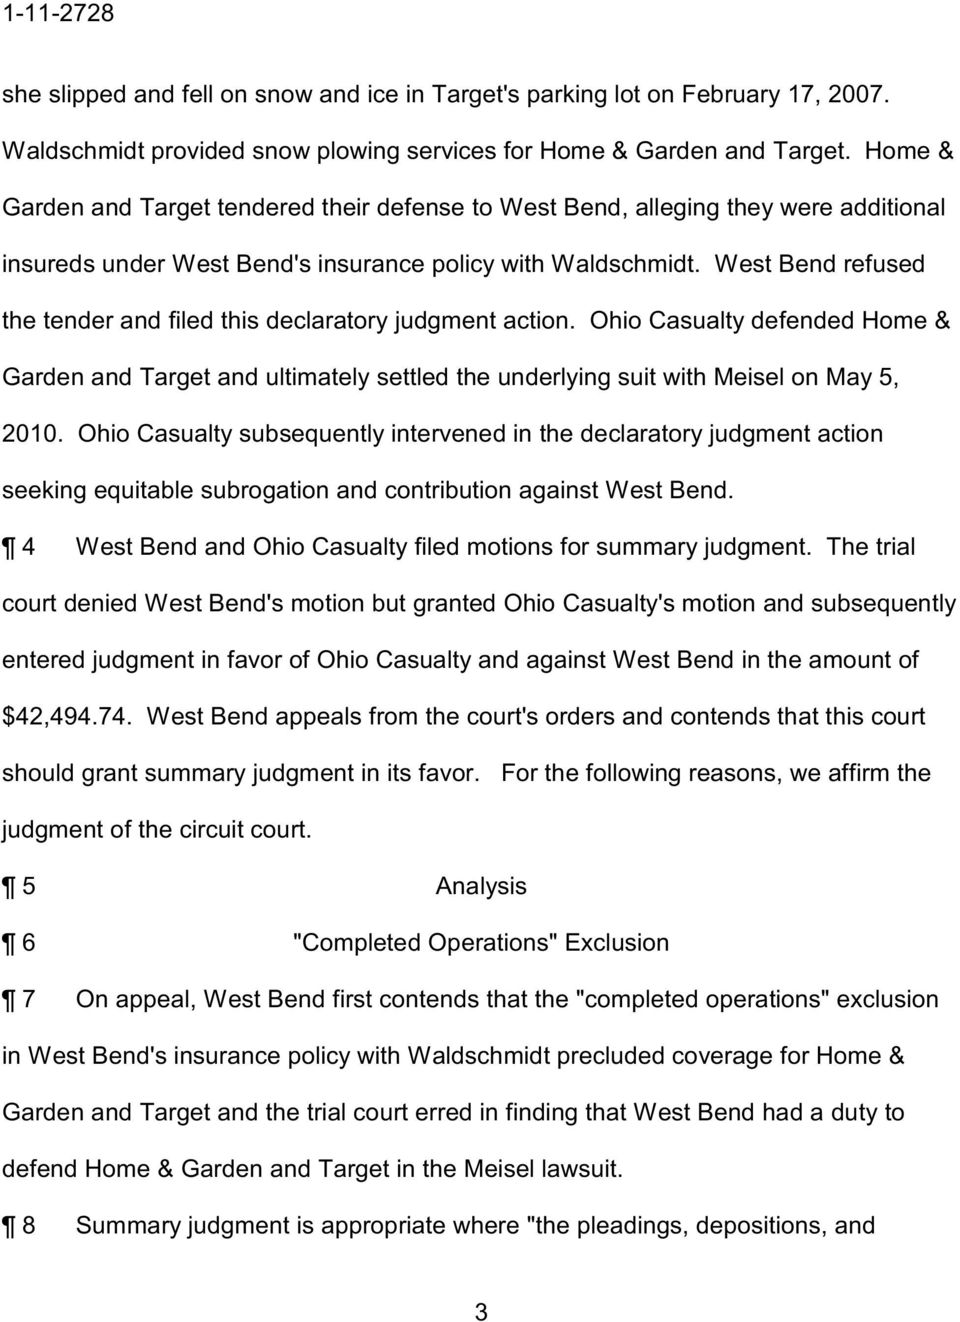 West Bend refused the tender and filed this declaratory judgment action. Ohio Casualty defended Home & Garden and Target and ultimately settled the underlying suit with Meisel on May 5, 2010.